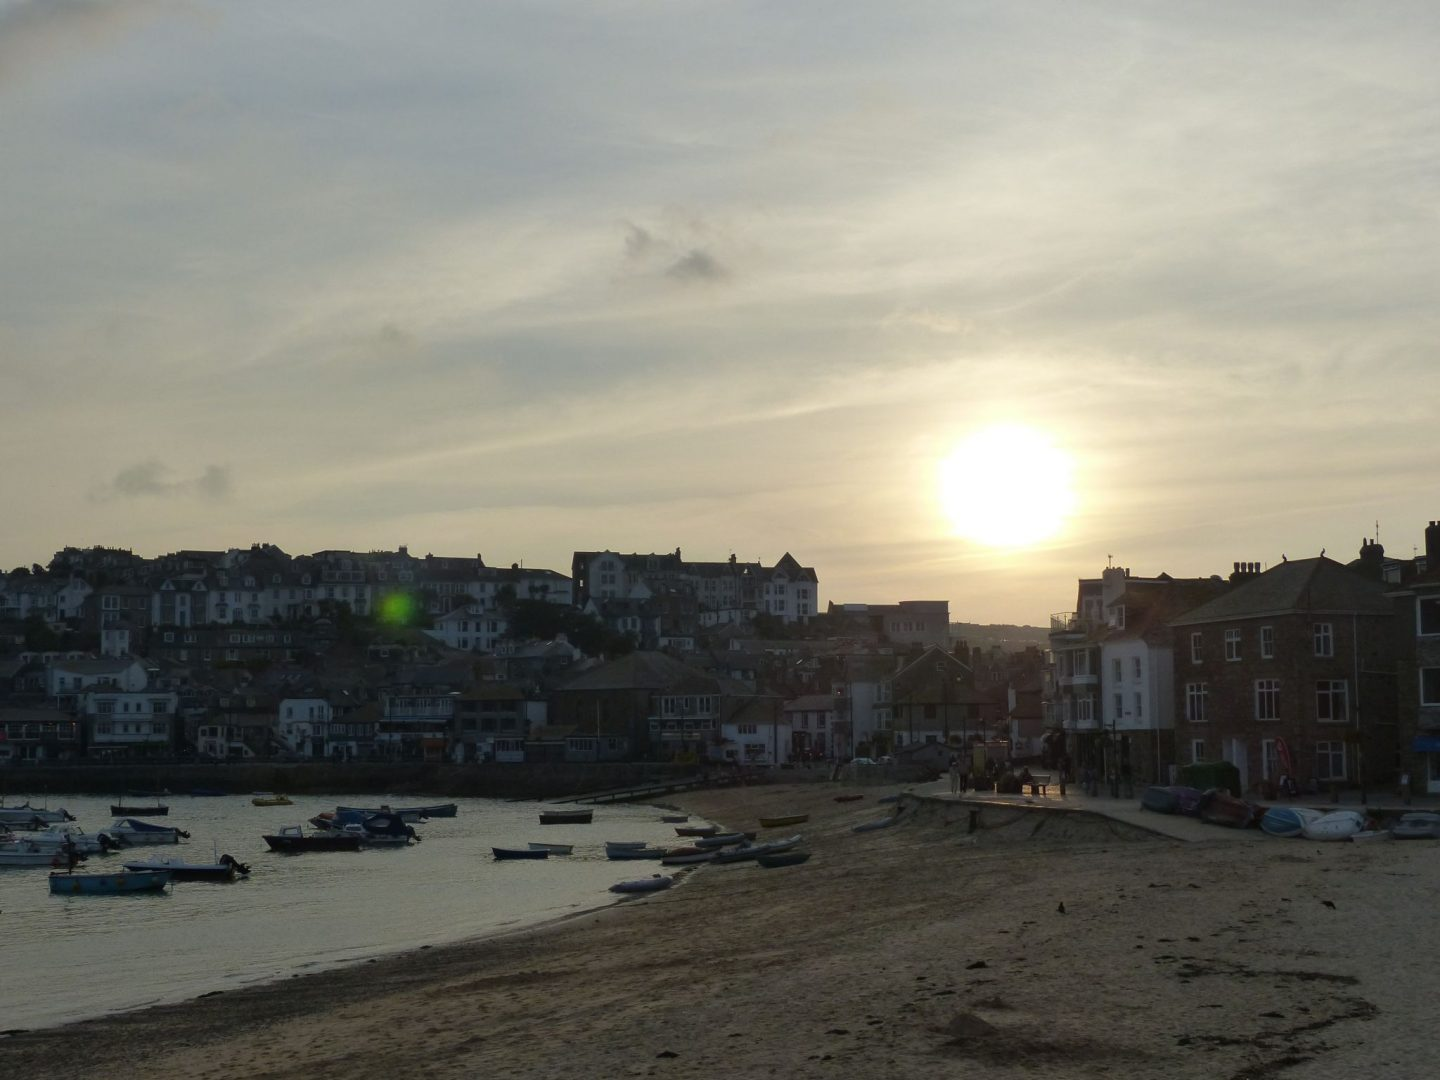 Sunset in St Ives, Cornwall